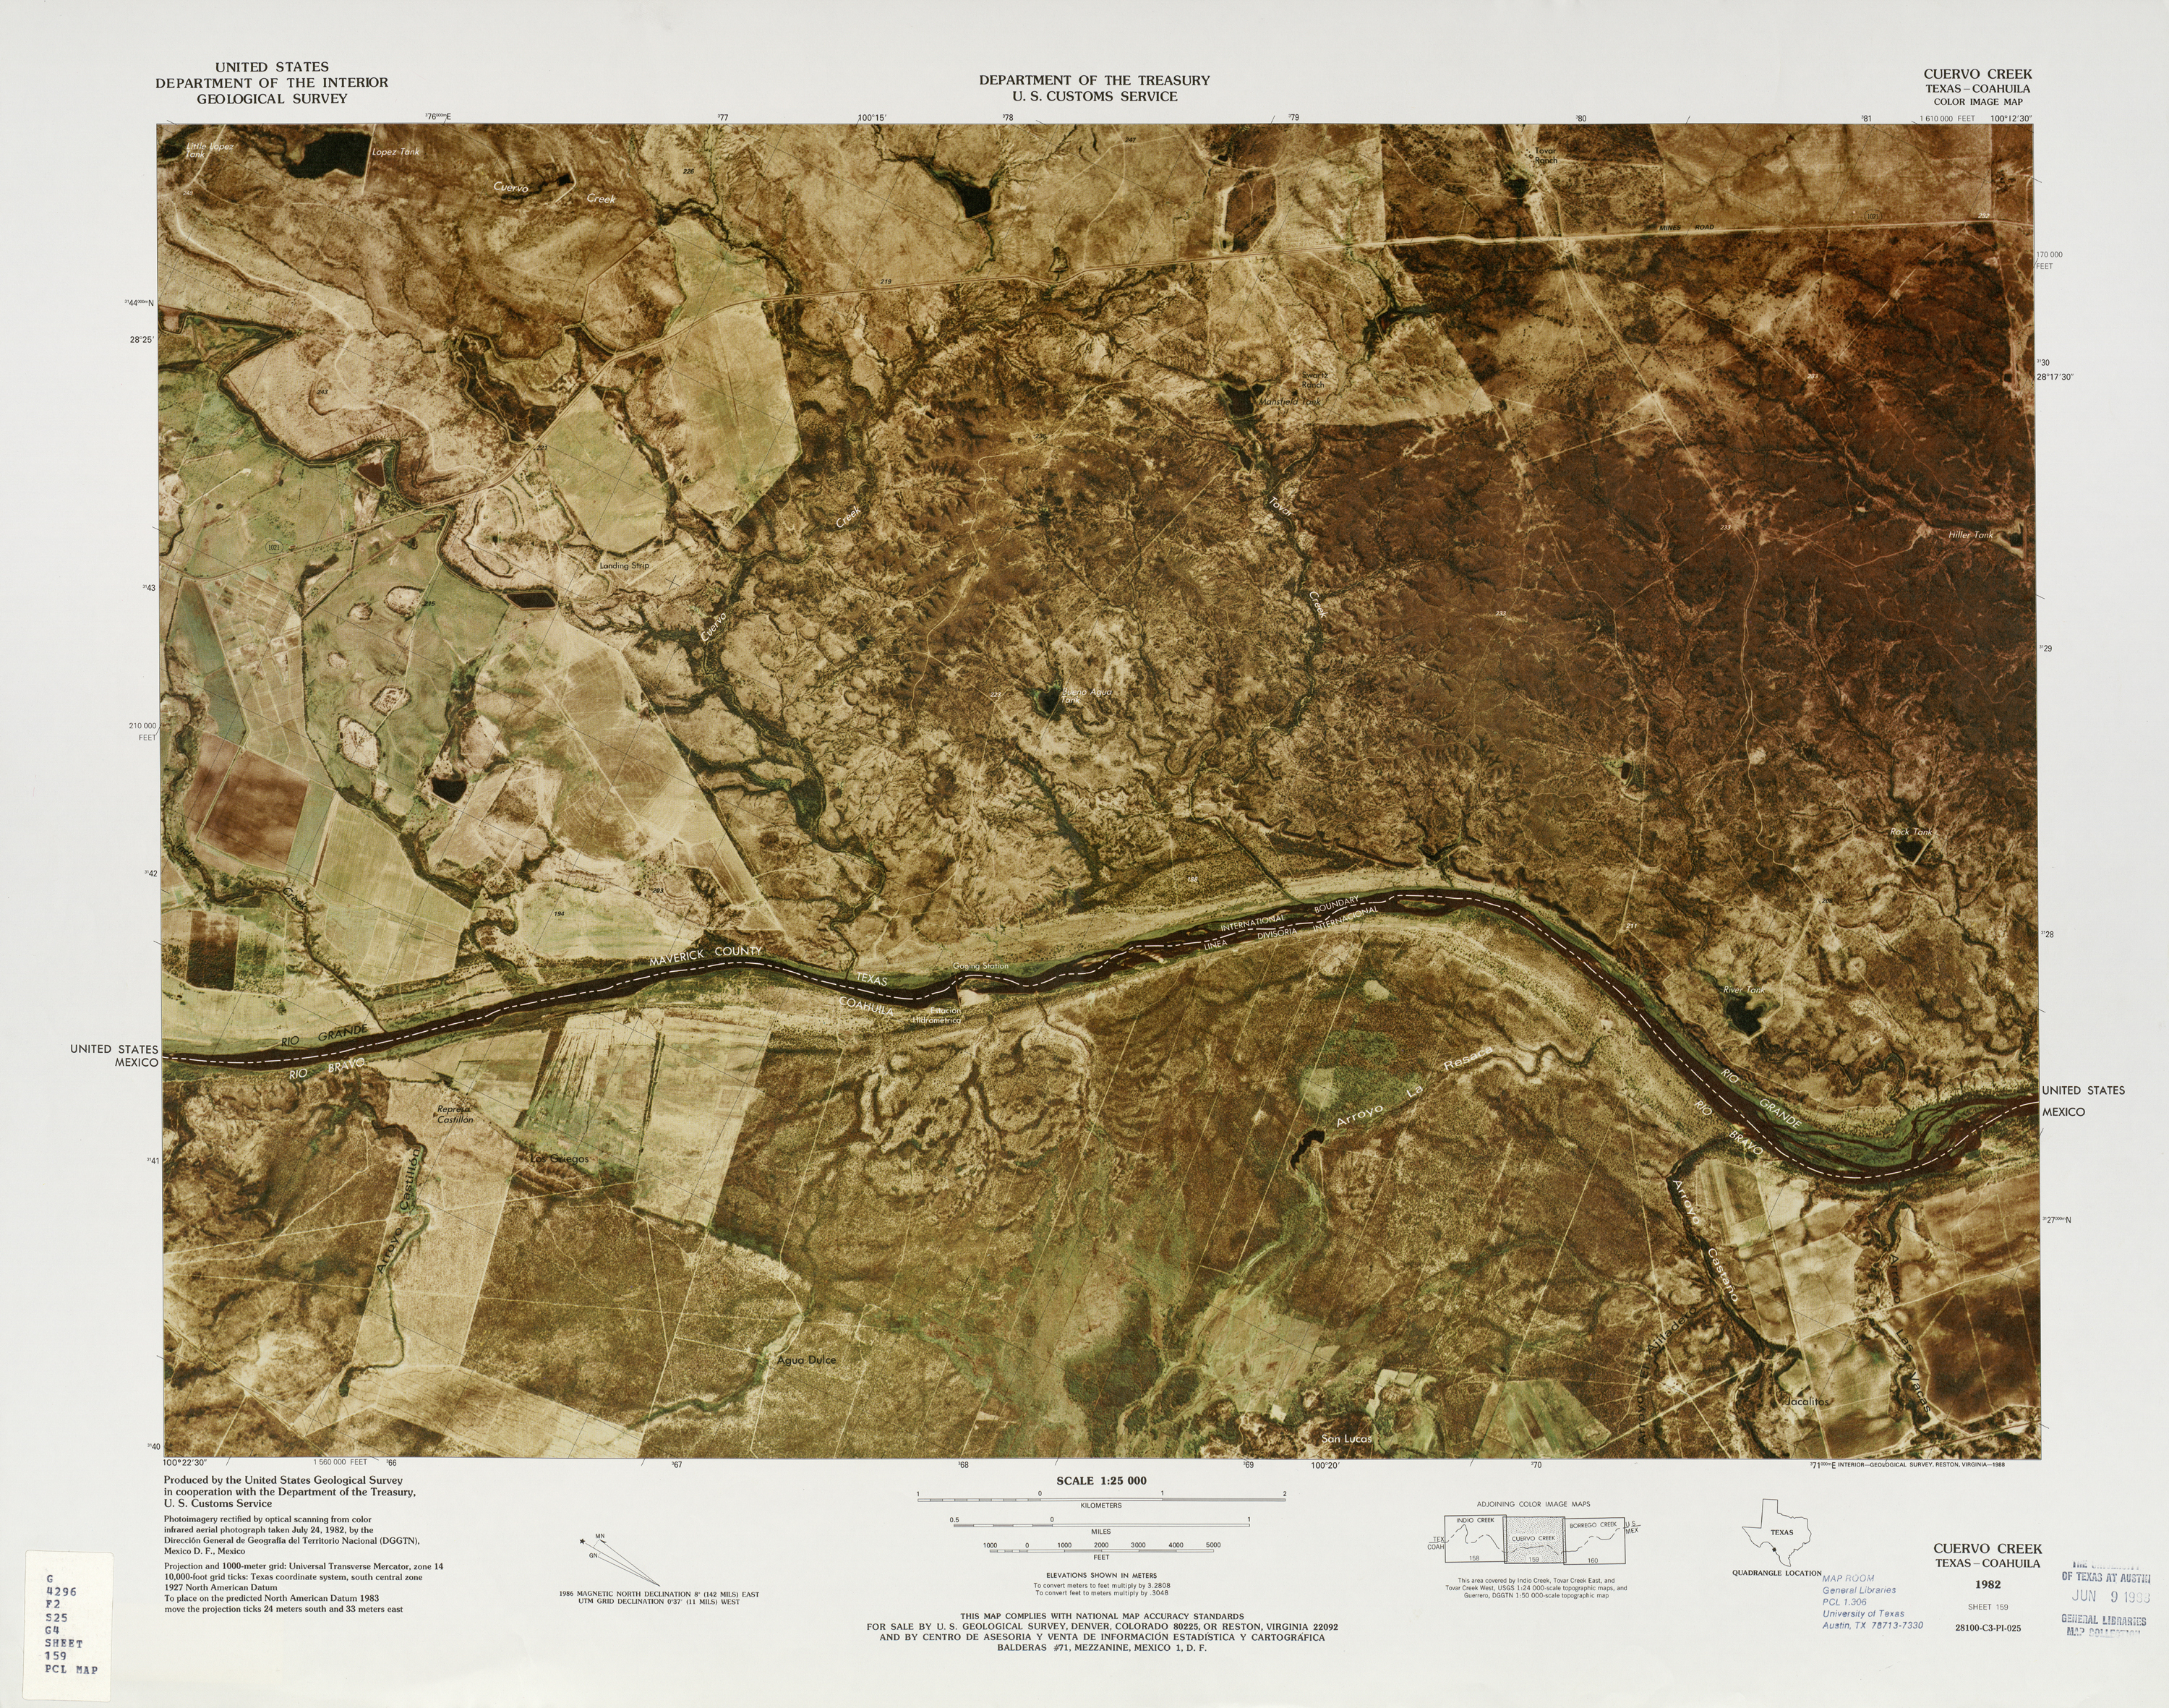 United States-Mexico Border Map, Cuervo Creek